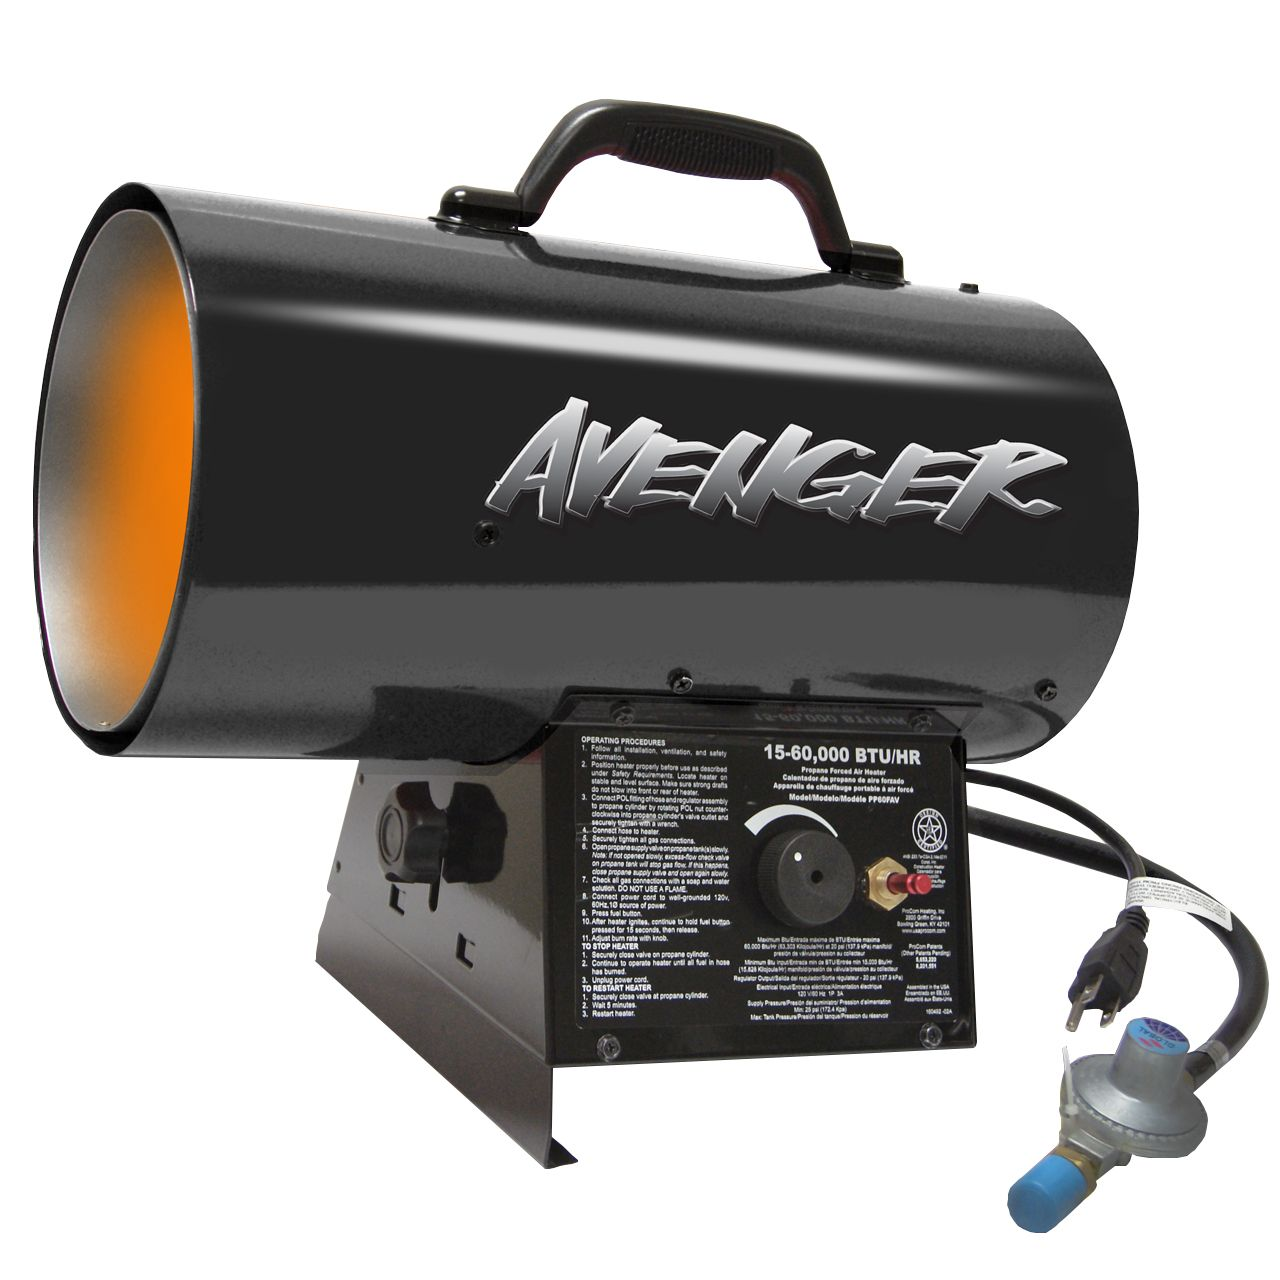 Avenger Portable Forced Air Propane Heater 60,000 BTU